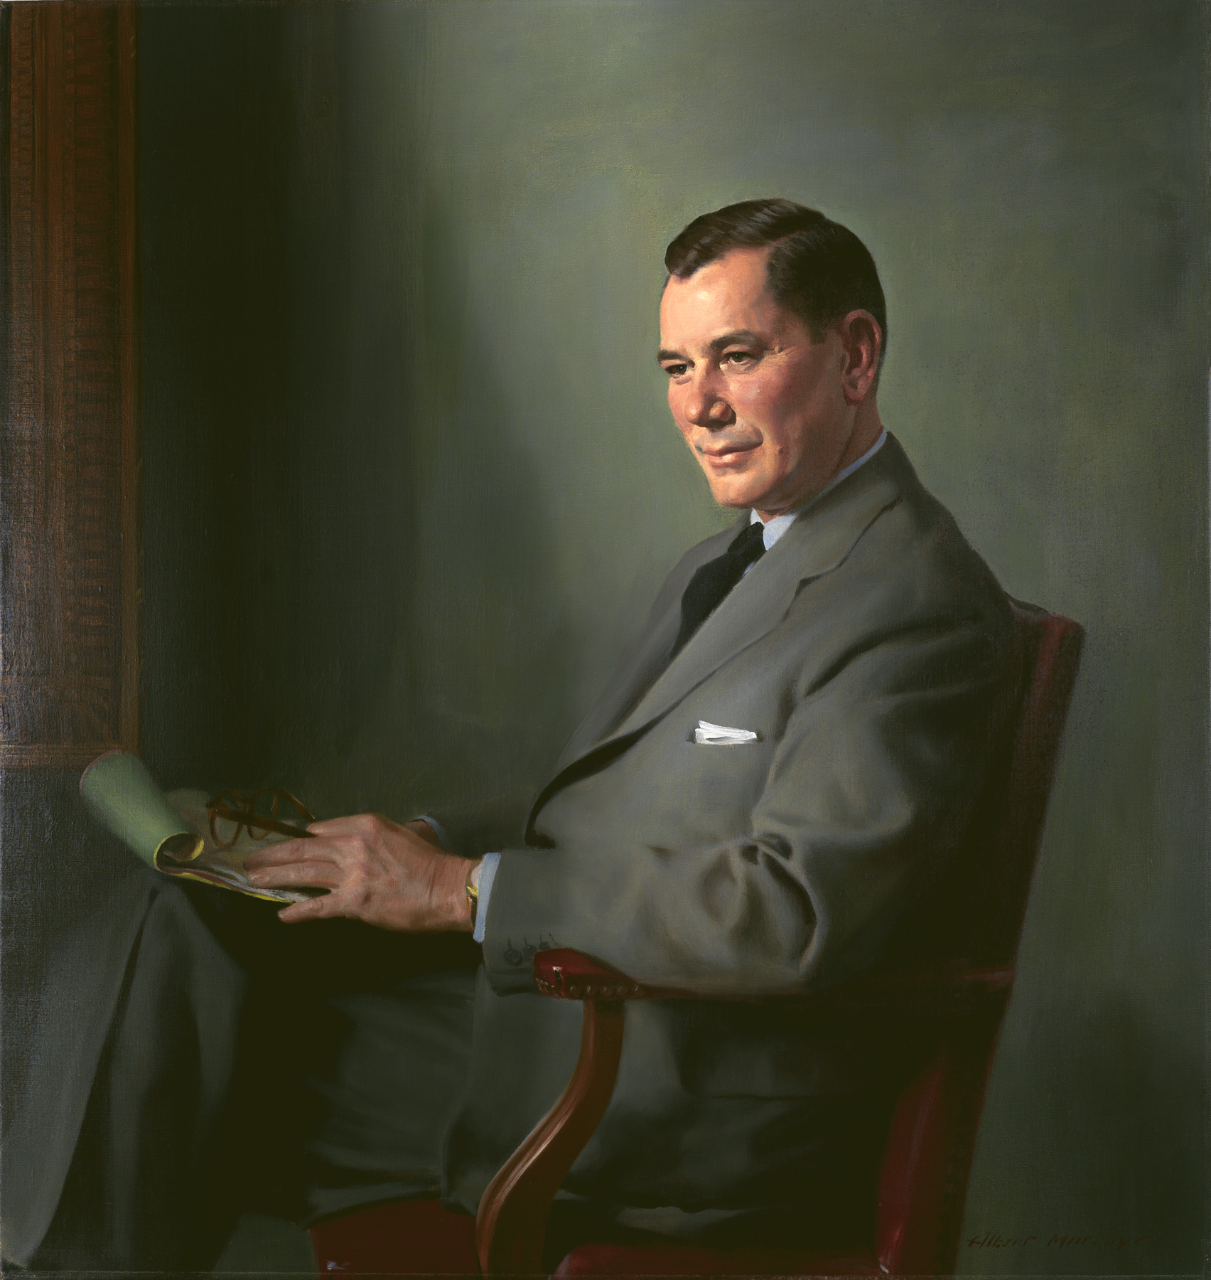 Portrait of Thomas S. Gates Jr. Secretary of the Navy